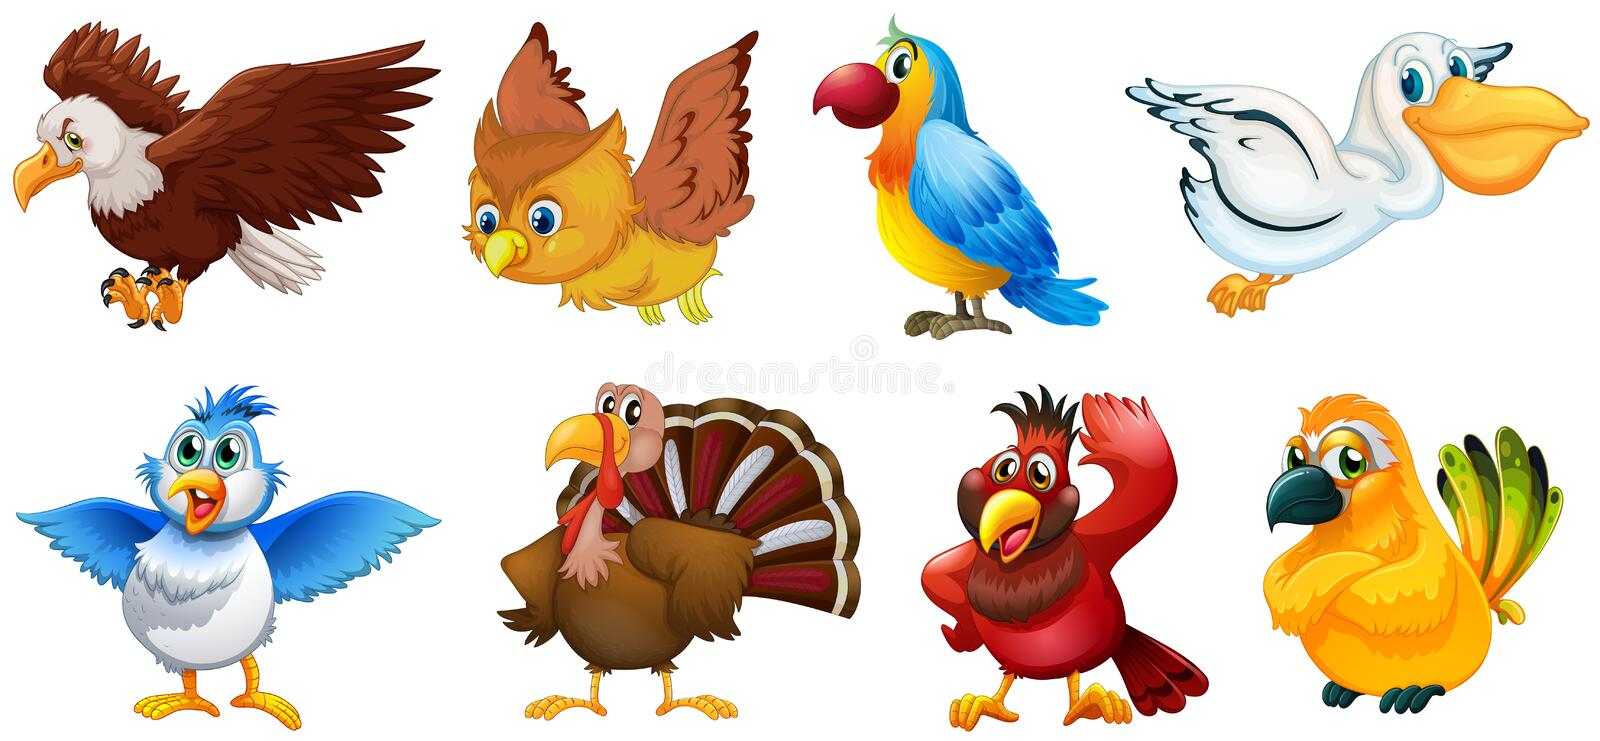 Different types of birds royalty free illustration